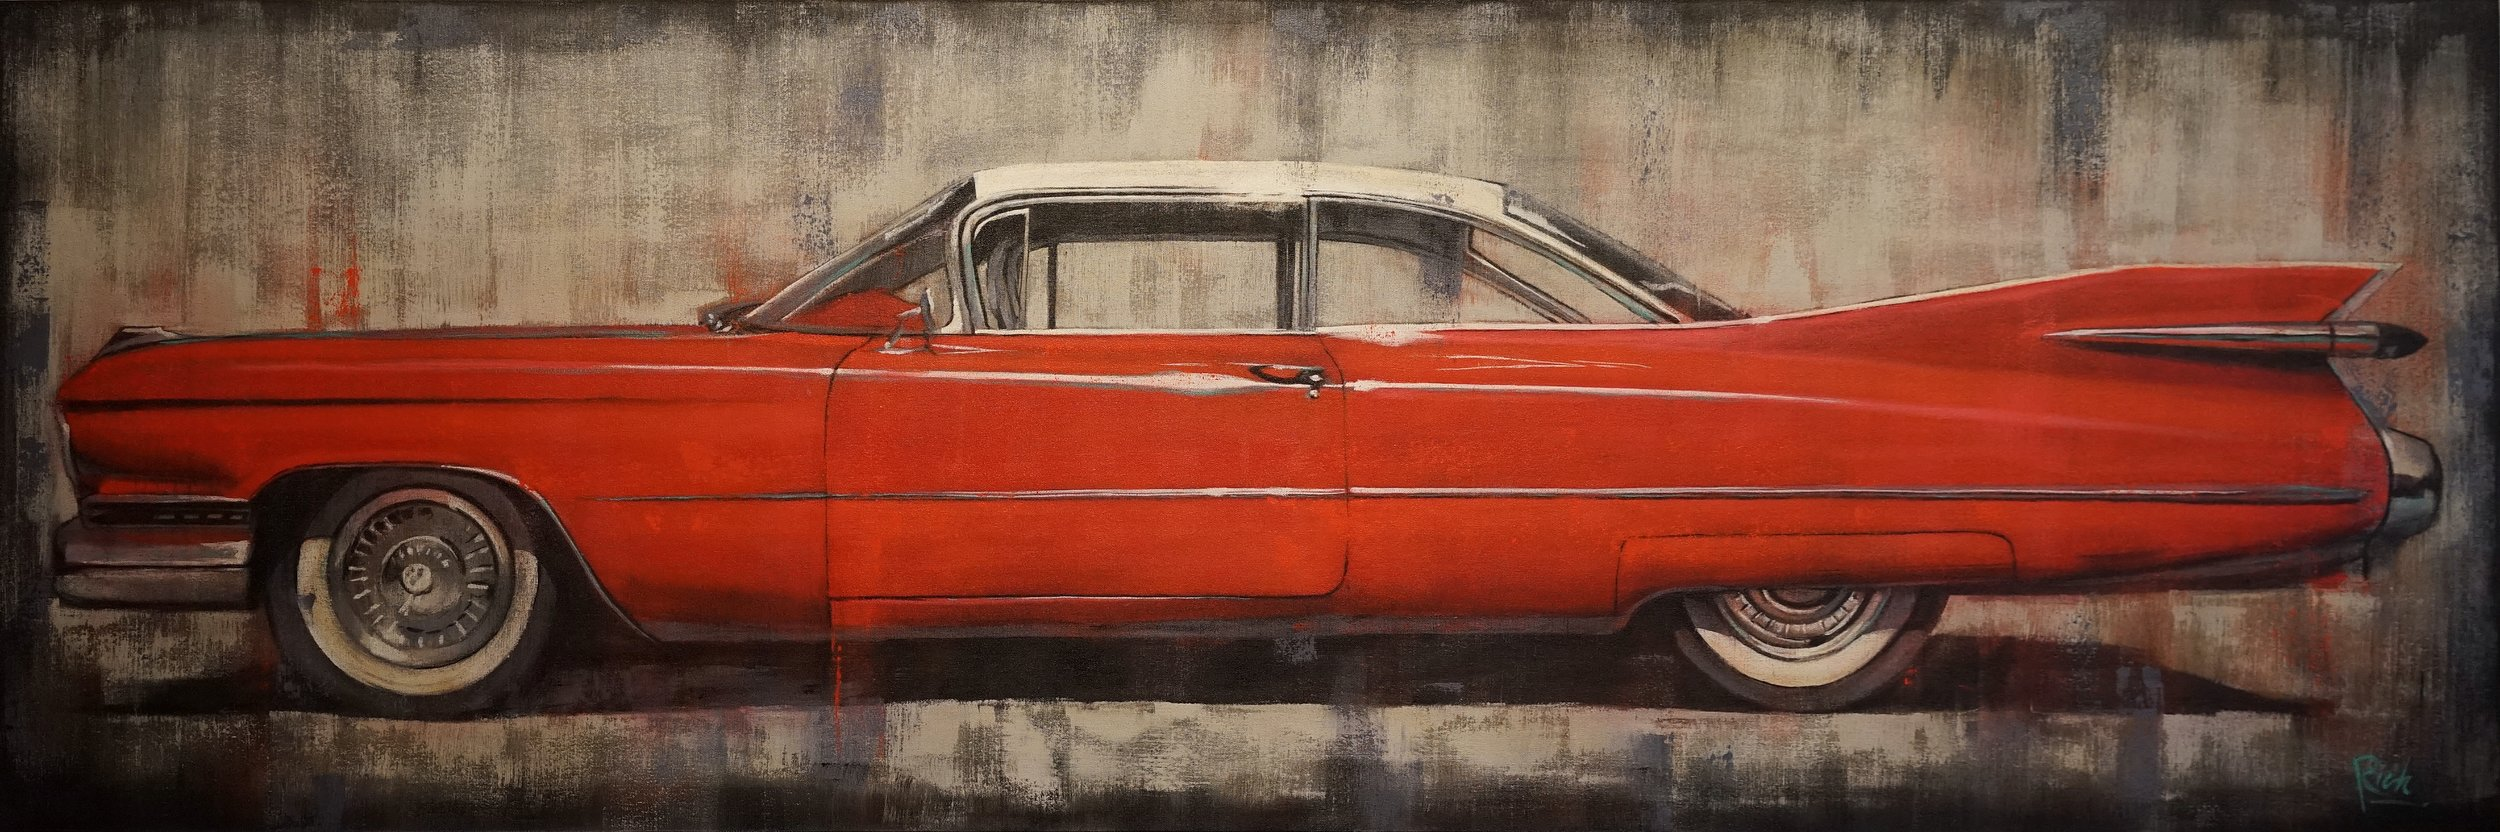 59 Eldorado  Acrylic on canvas 72x24